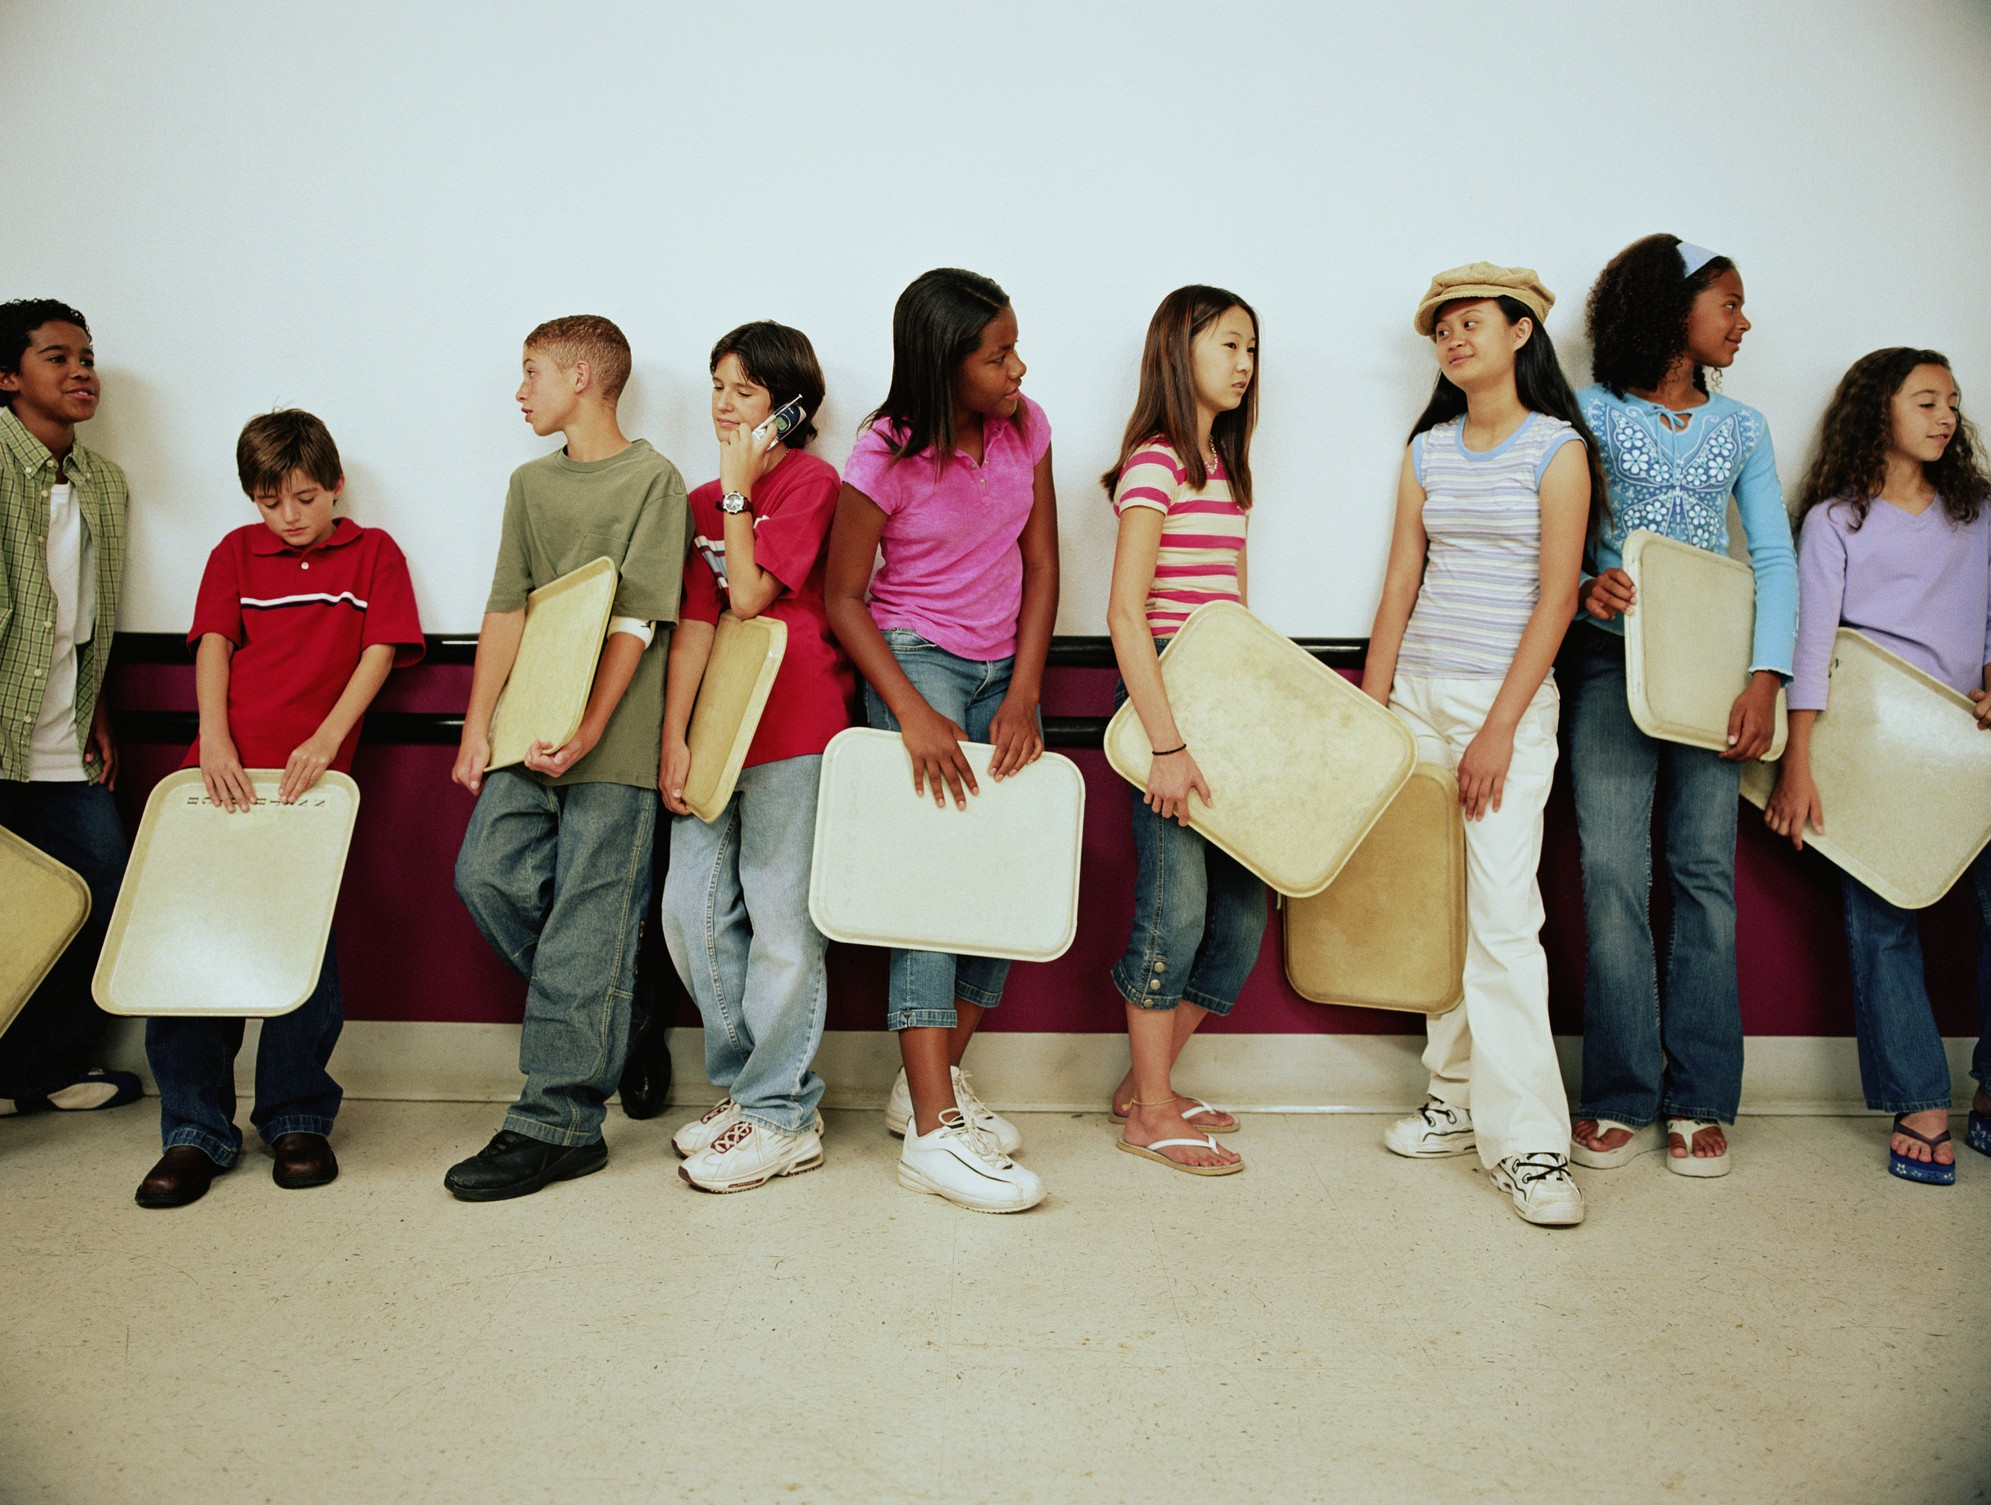 Middle school kids holding their trays wait in a school lunch line.